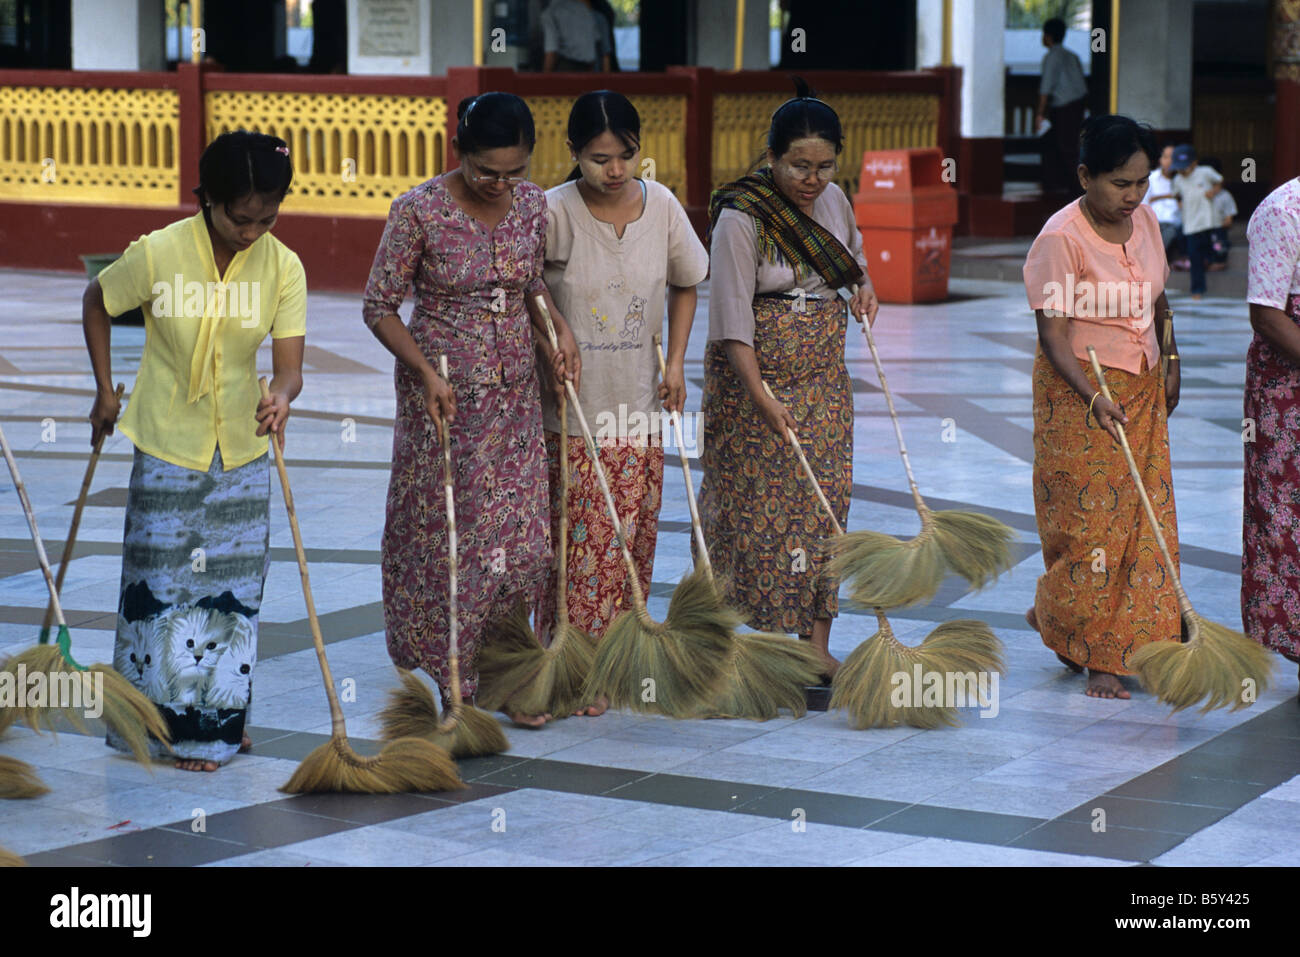 Burmese women ritual cleaning/sweeping at Shwedagon Paya, Burma's most sacred Buddhist site, Rangoon or Yangon, Stock Photo